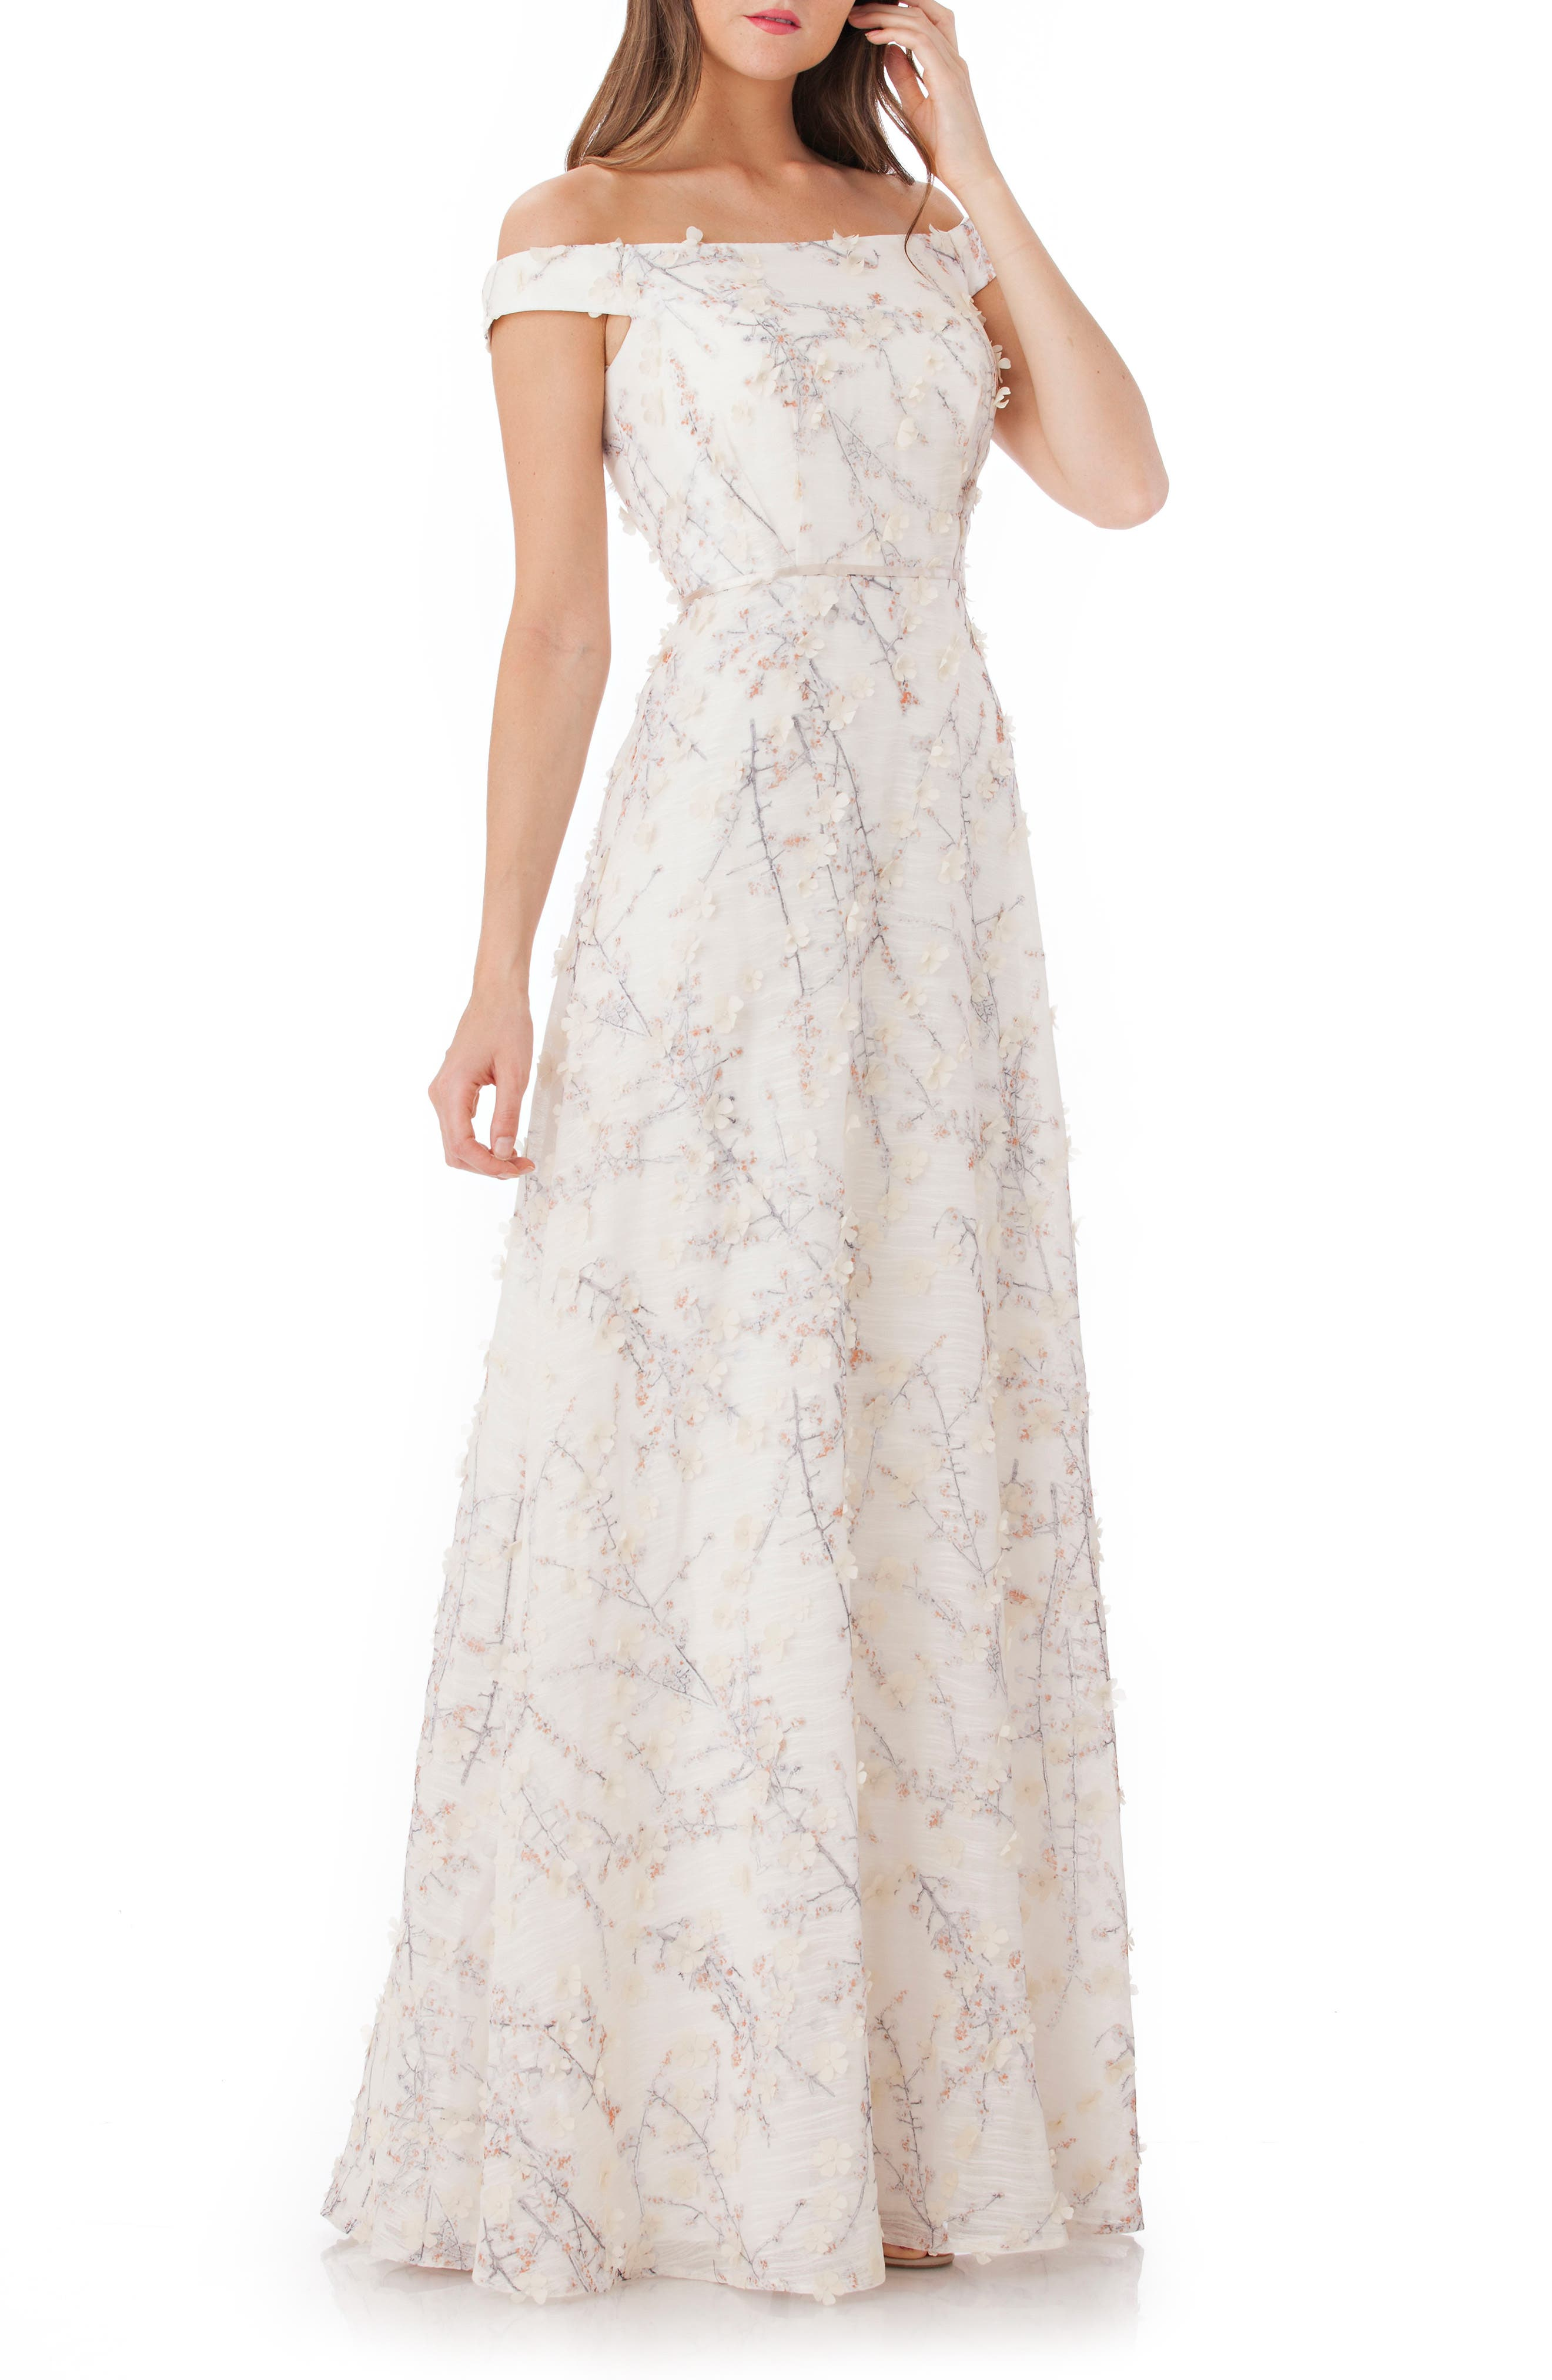 3D Embroidery Off the Shoulder Gown,                         Main,                         color, Champagne